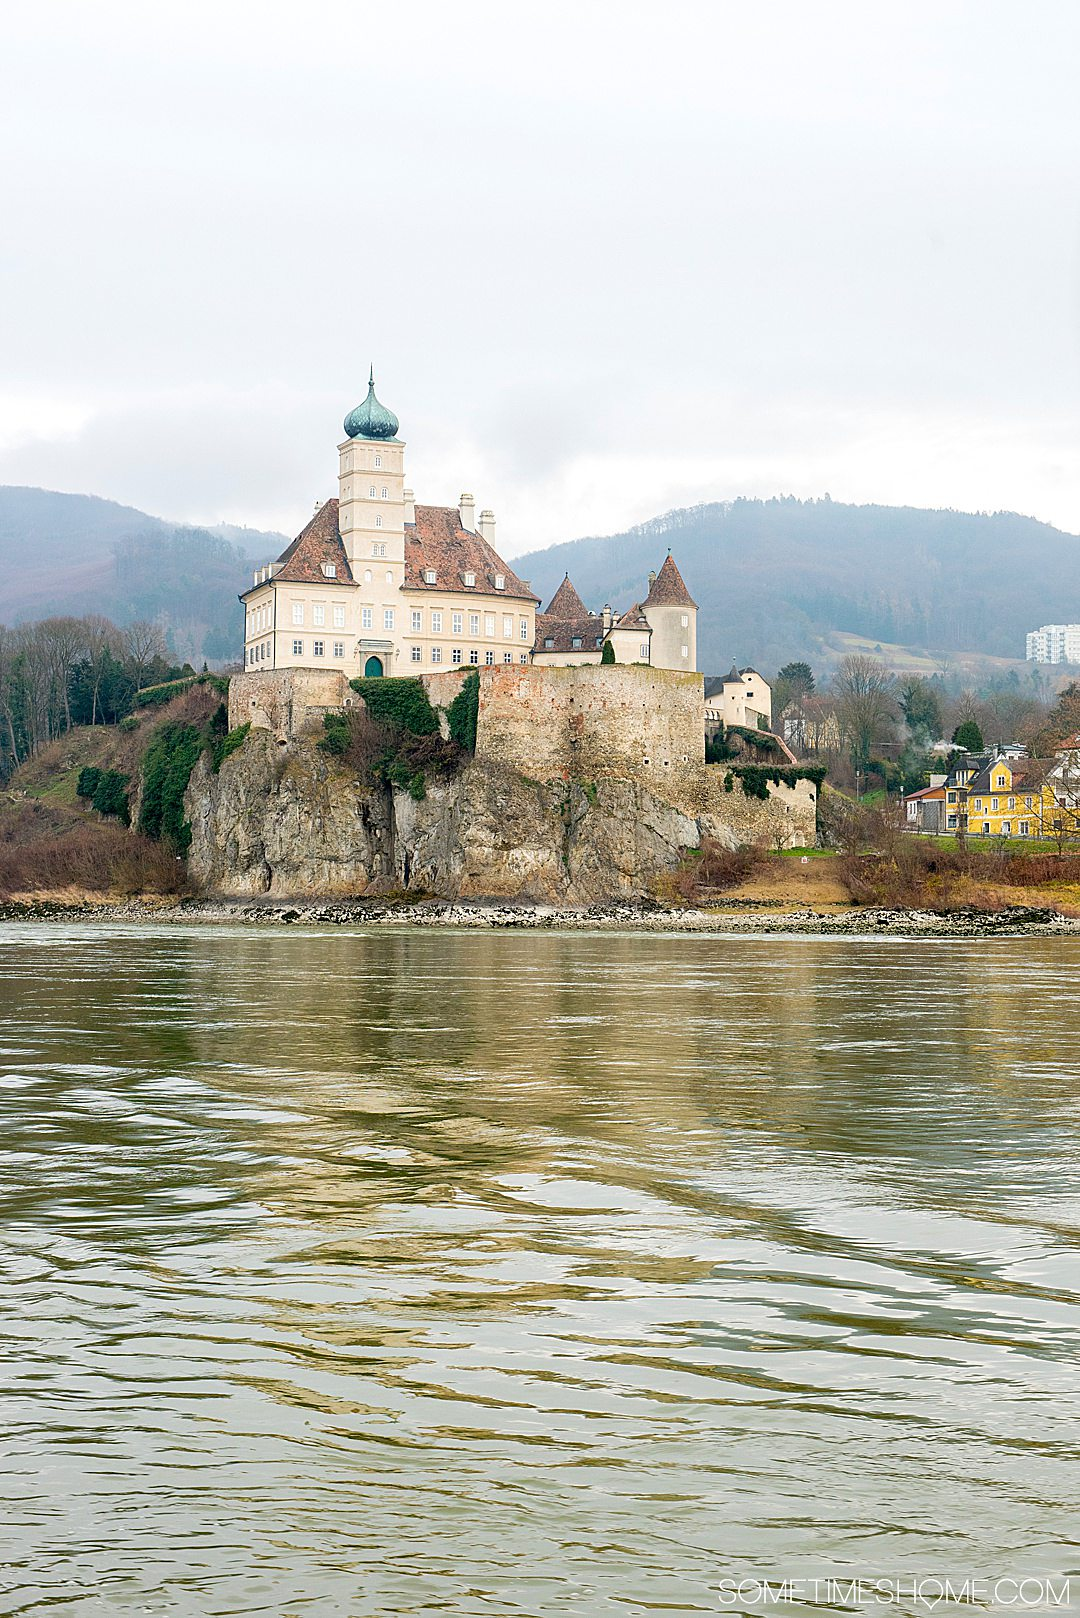 Beautiful photo-worthy scenery along the Danube Viking Christmas River Cruise, with holiday markets in quaint European towns. Click through for the entire cruise itinerary. #RiverCruise #ChristmasRiverCruise #SometimesHome